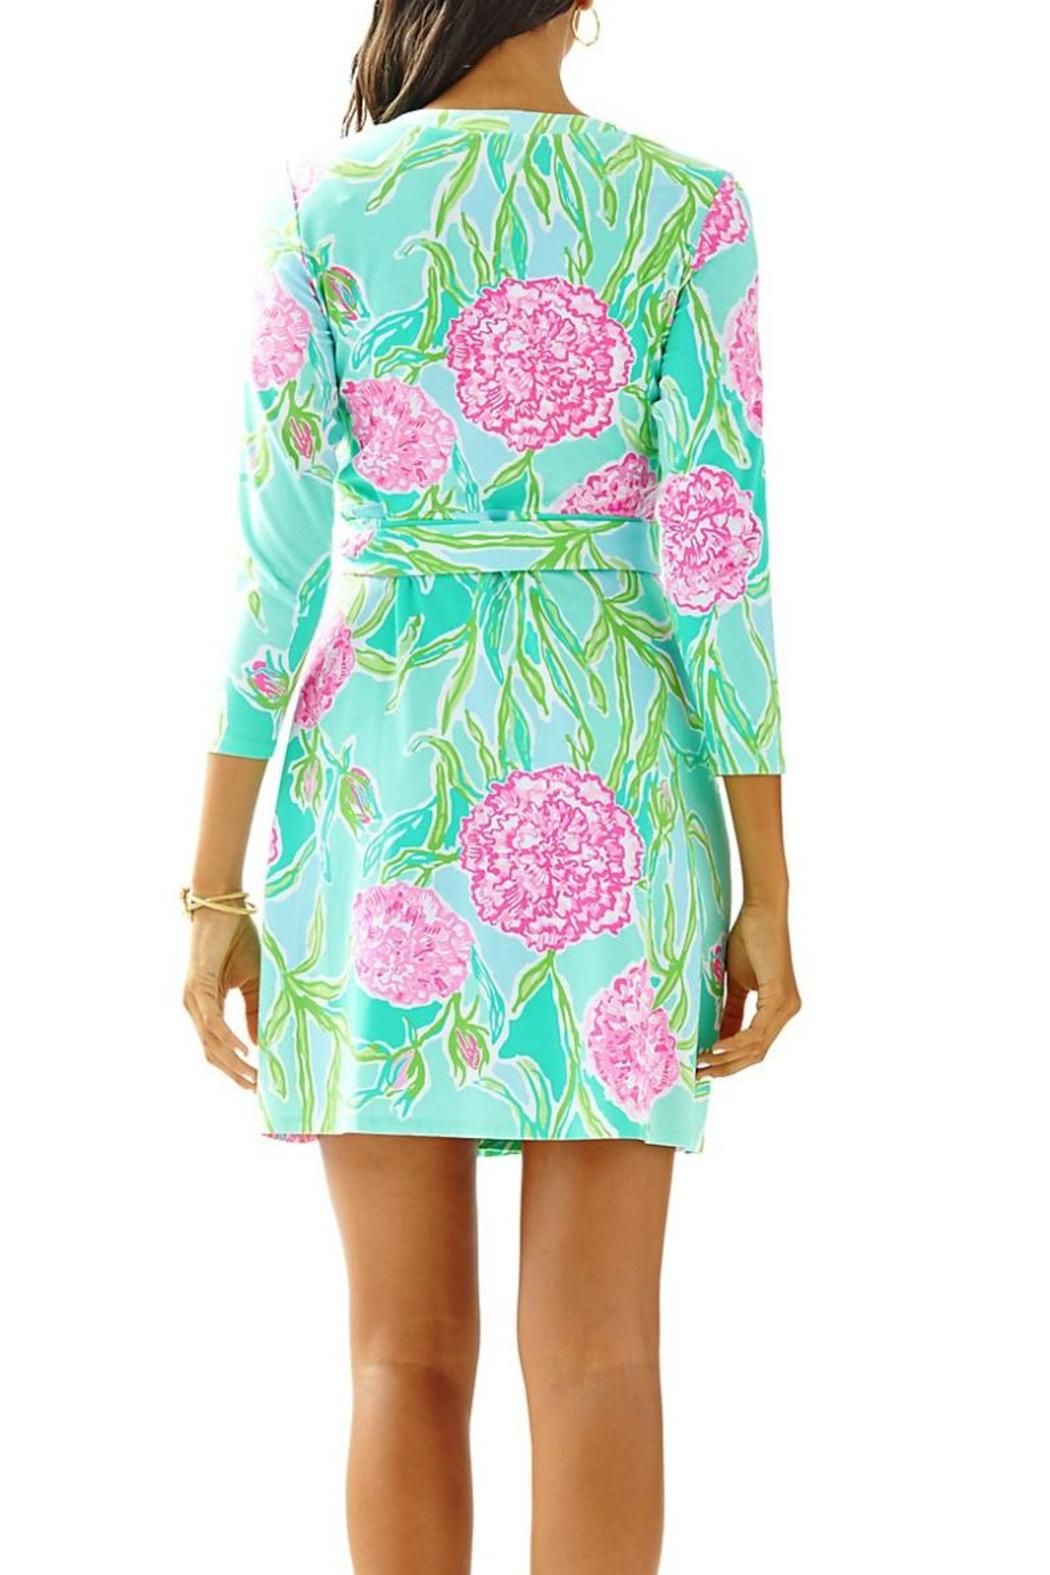 Lilly Pulitzer Meridan Wrap Dress From Connecticut By